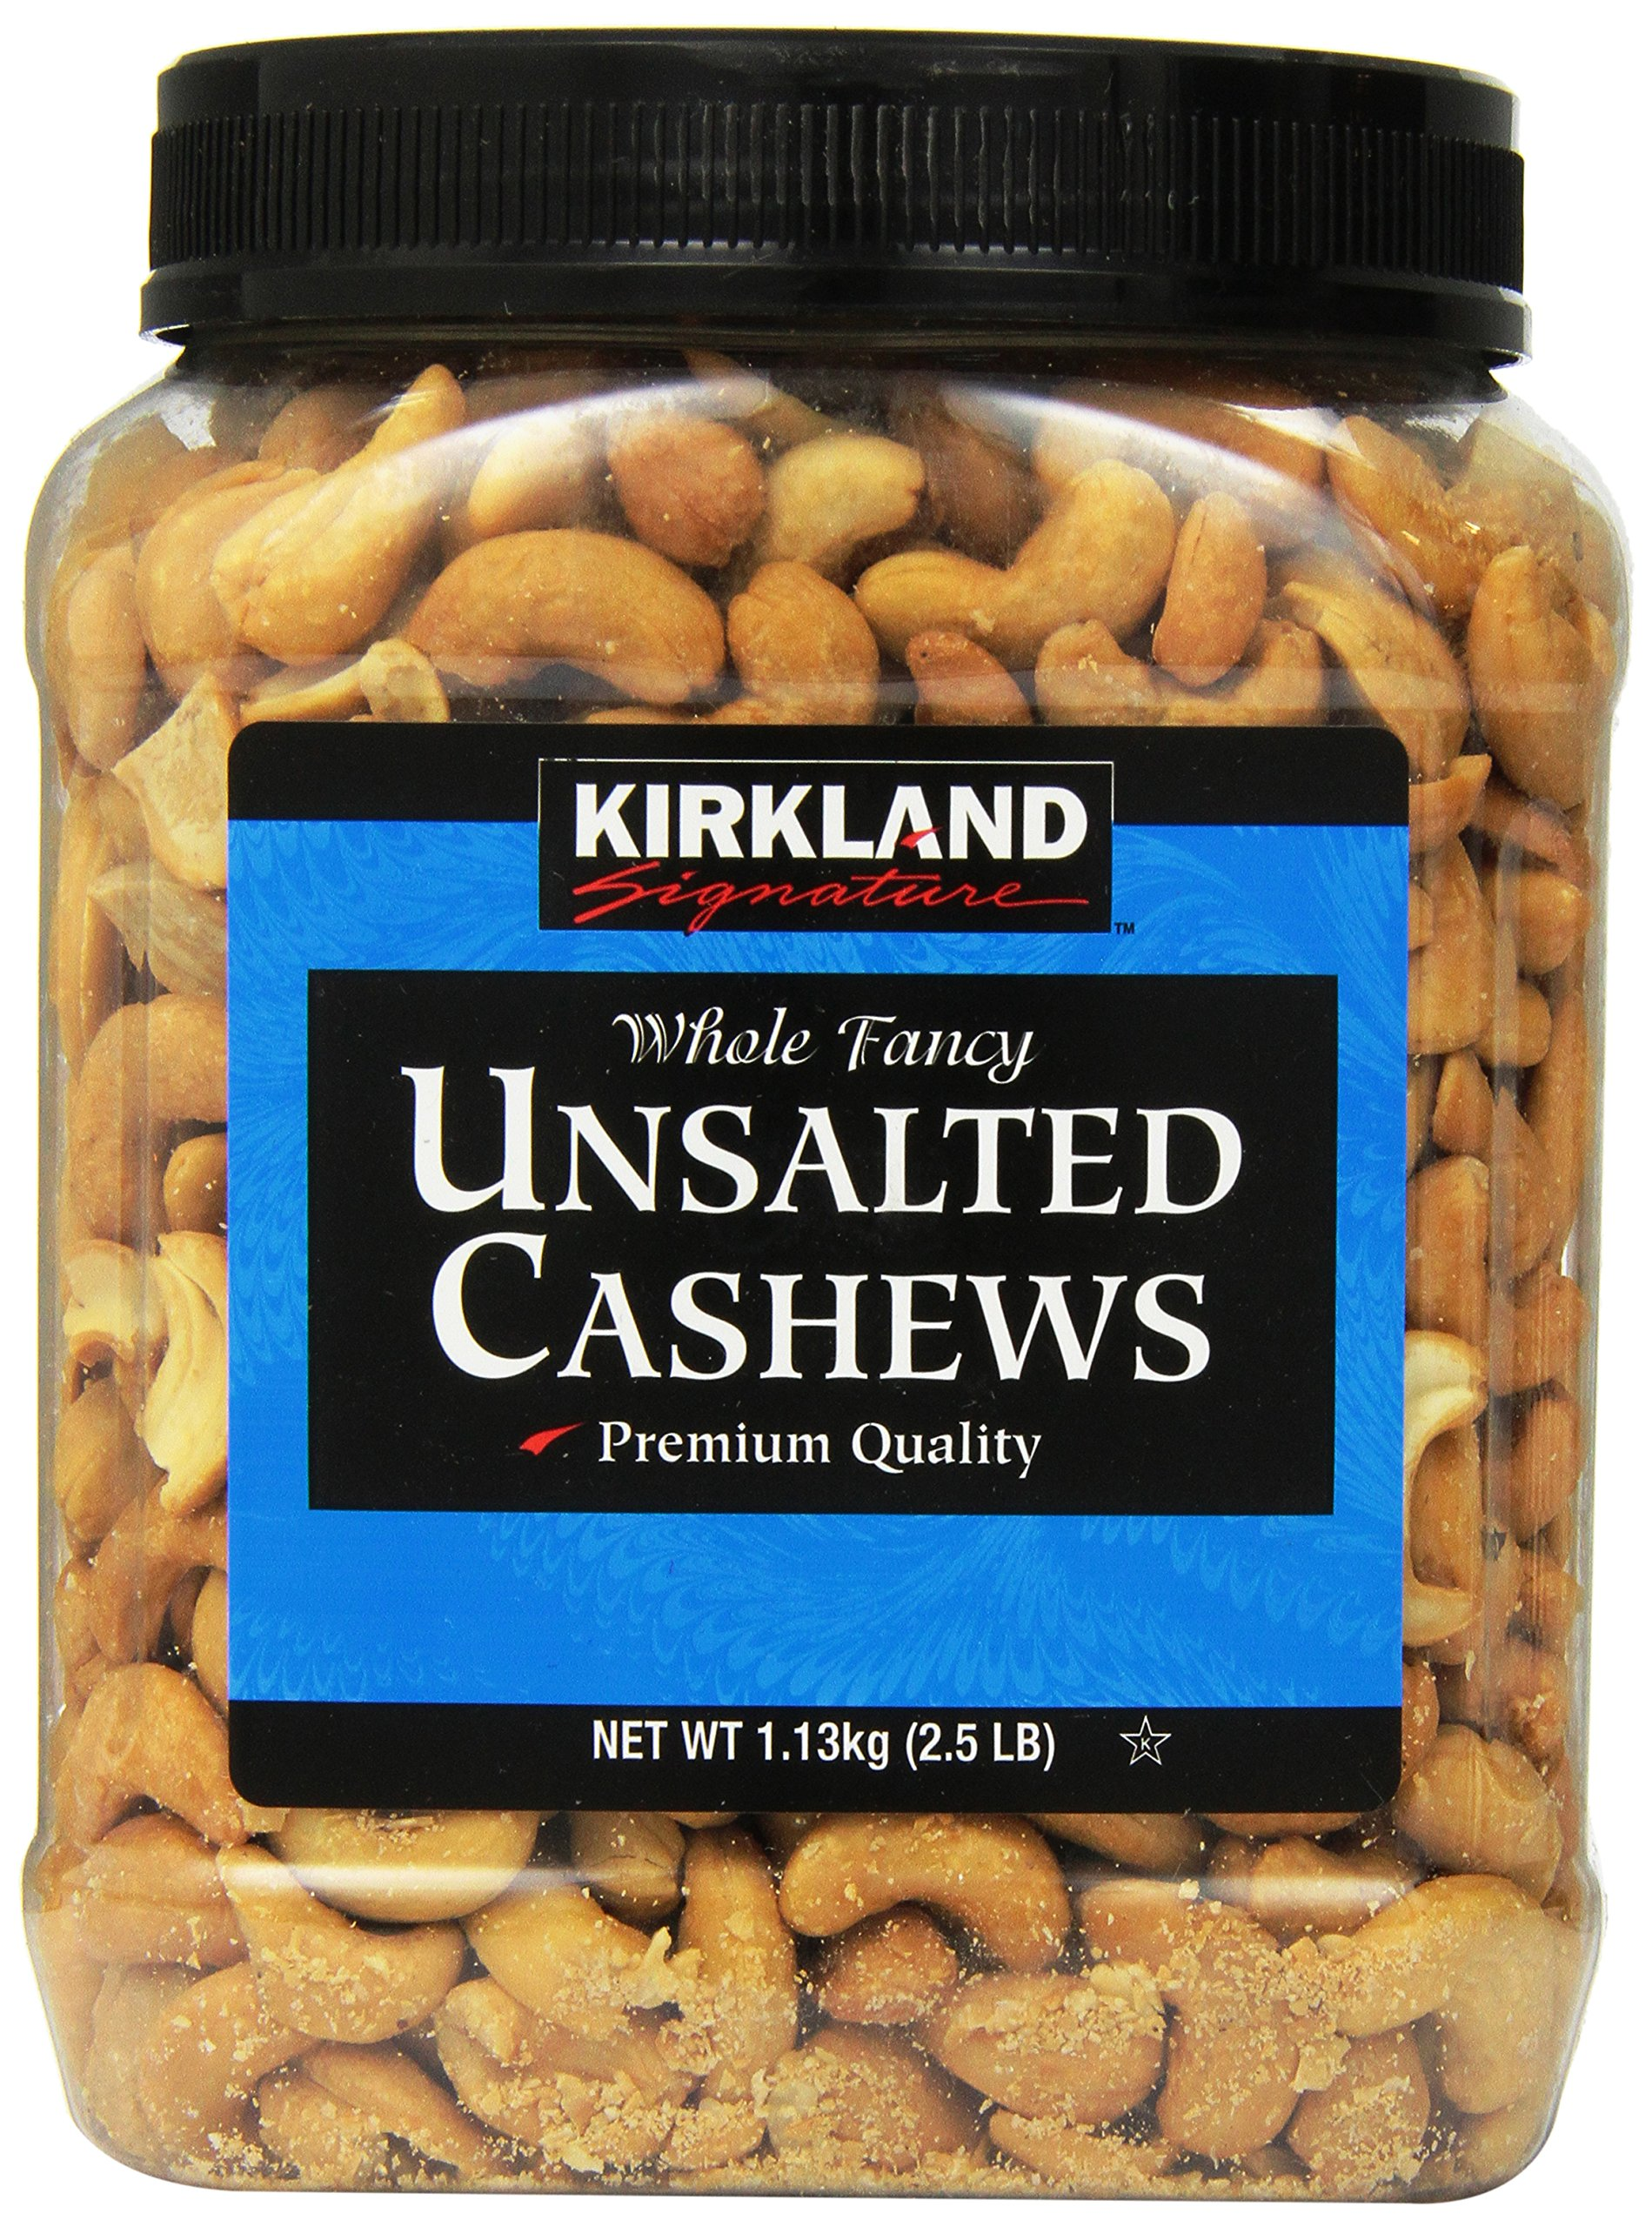 Kirkland Signature Unsalted Cashews